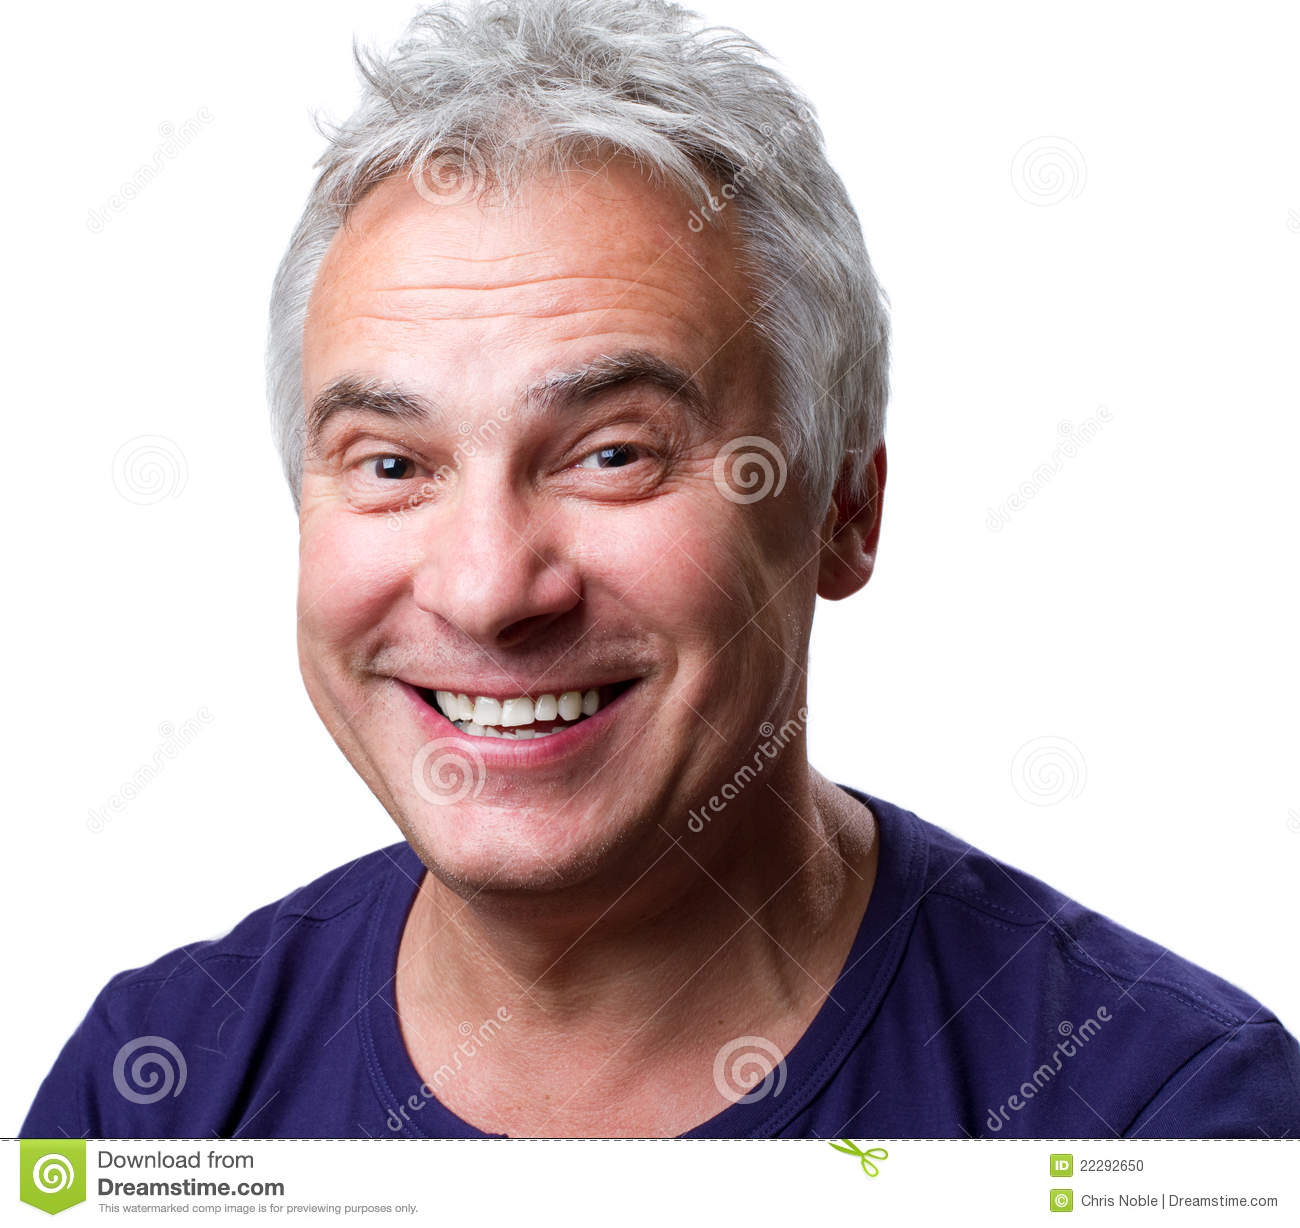 Grinning man stock photo. Image of smile, isolated ...